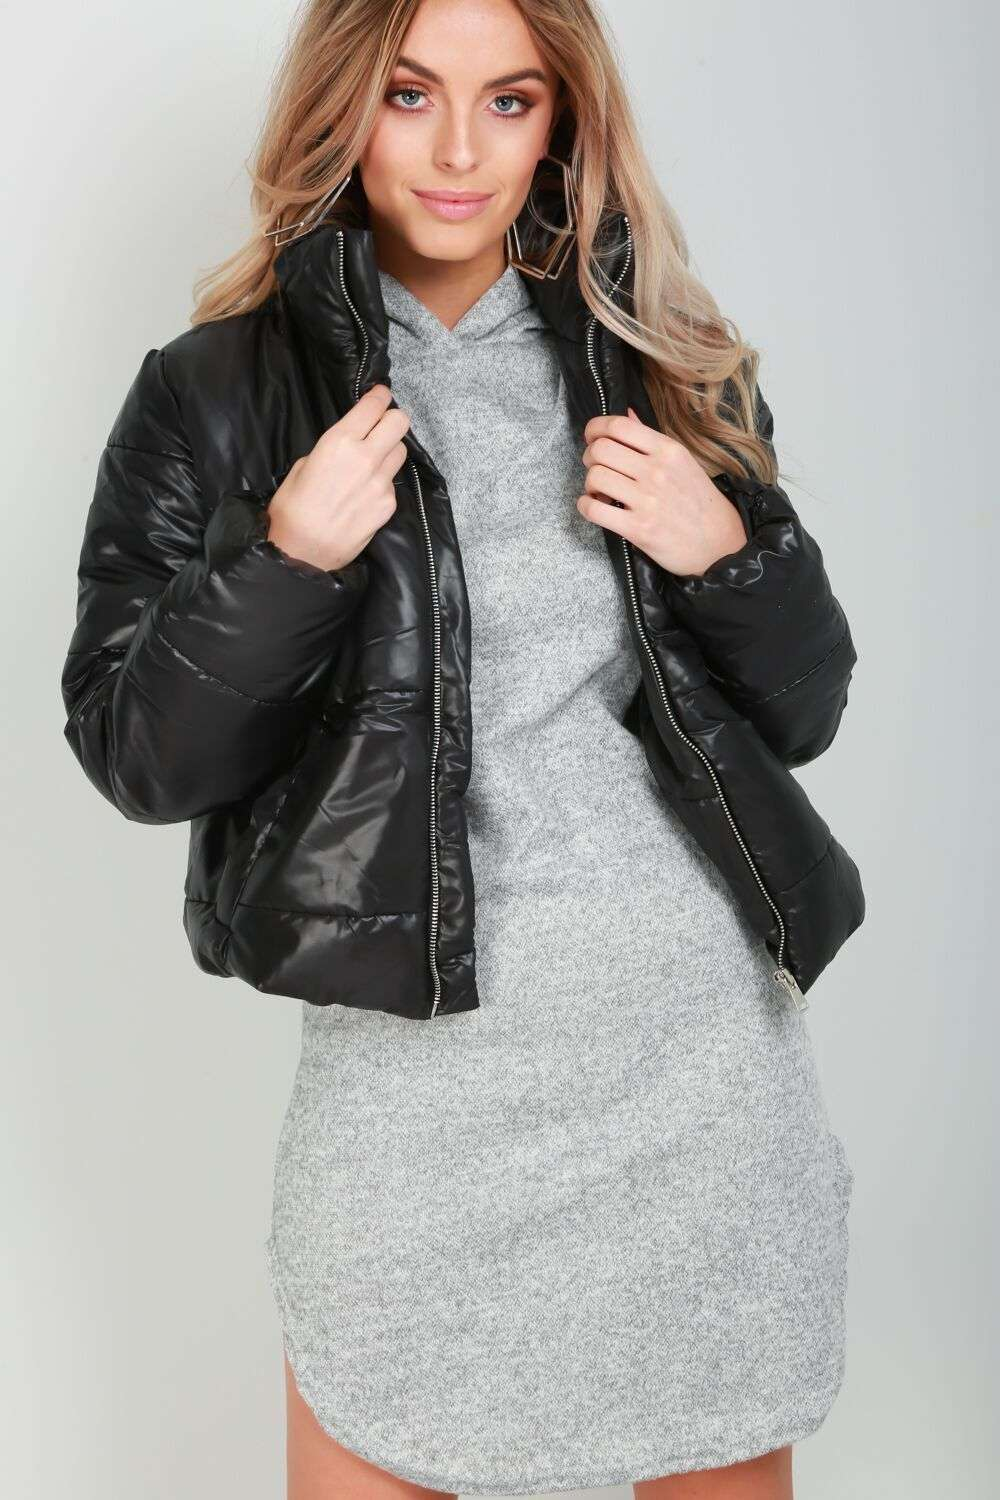 Sophia Cropped High Shine Puffer Jacket - bejealous-com